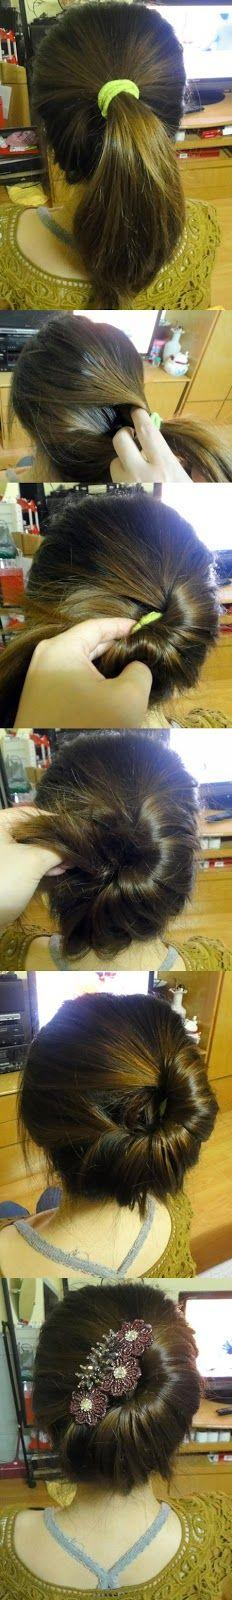 Make A Chignon For Your Hair, don't really care for the piece in her hair but love the idea: Idea, Hairstyles, Hairdos, Hair Styles, Makeup, Updos, Hair Do, Side Bun, French Twist